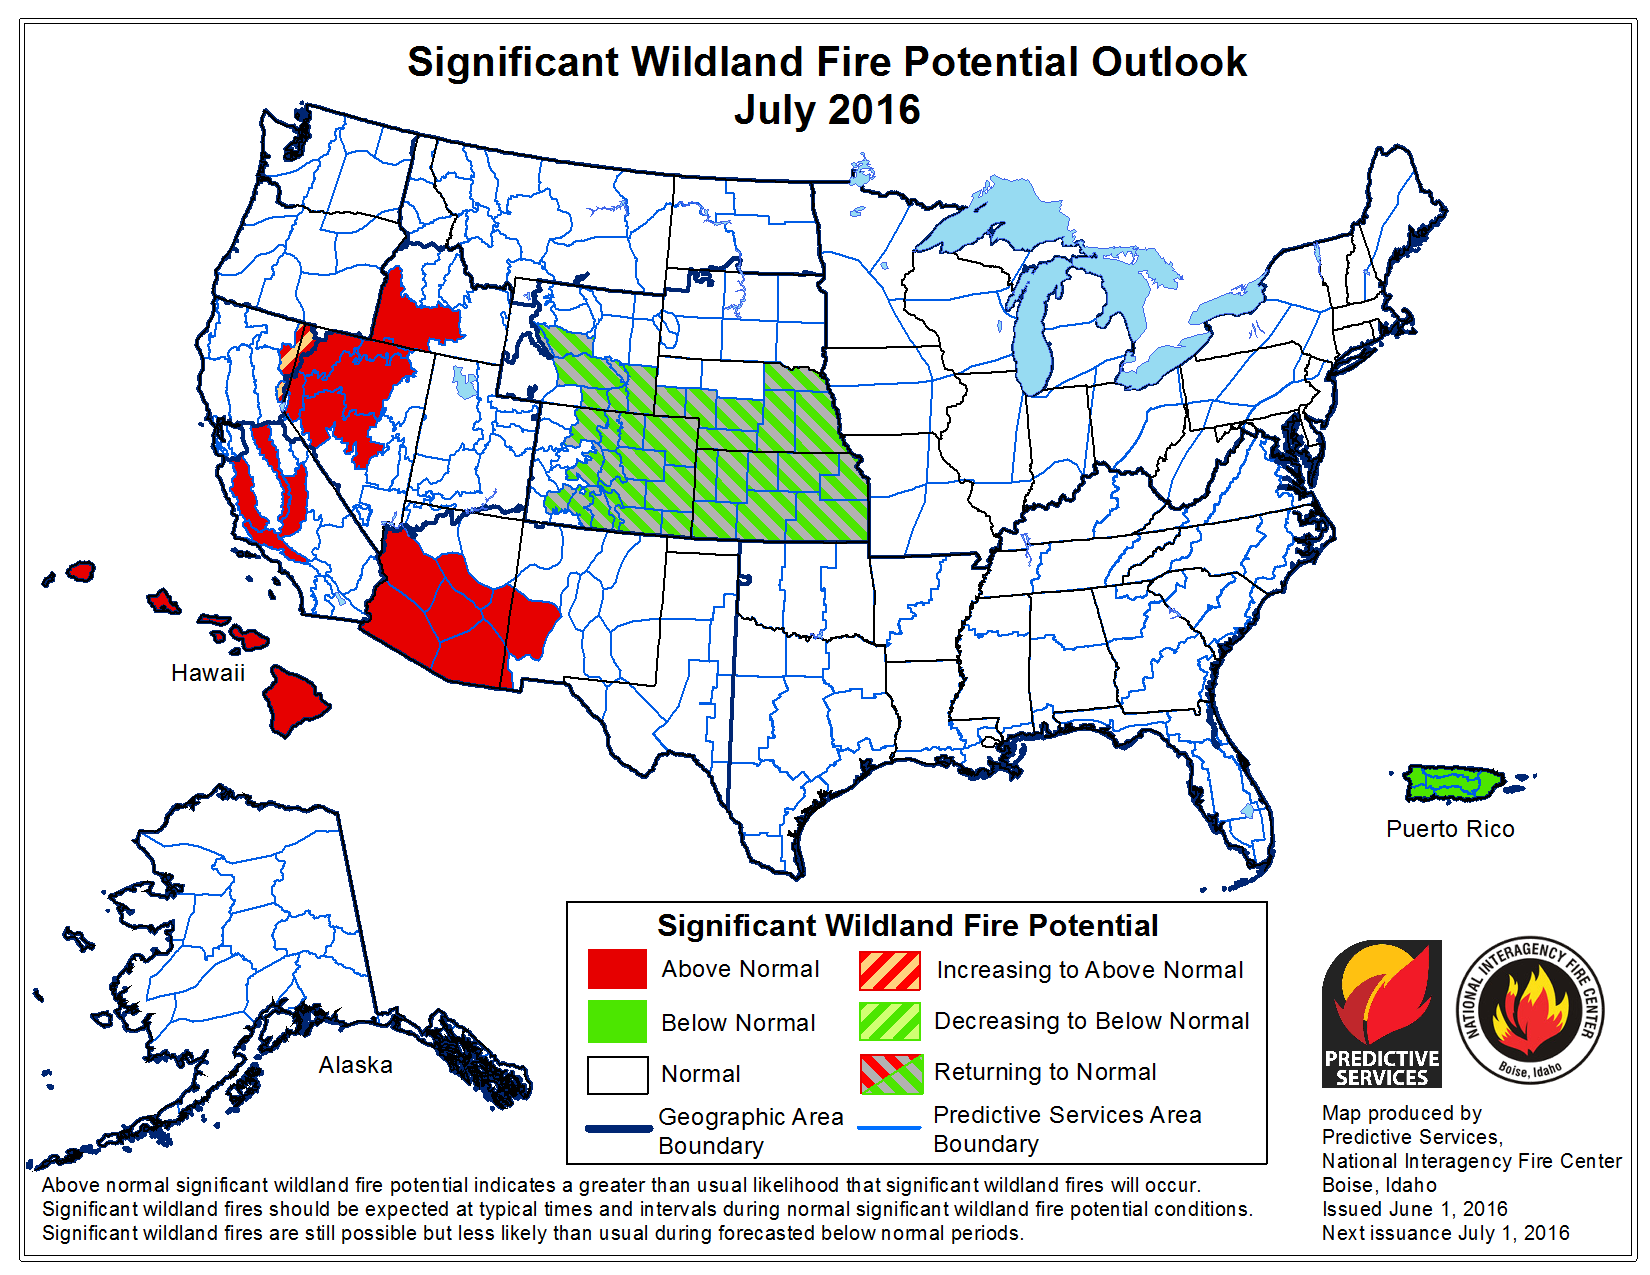 Significant Wildfire Potential Outlook - July 2016